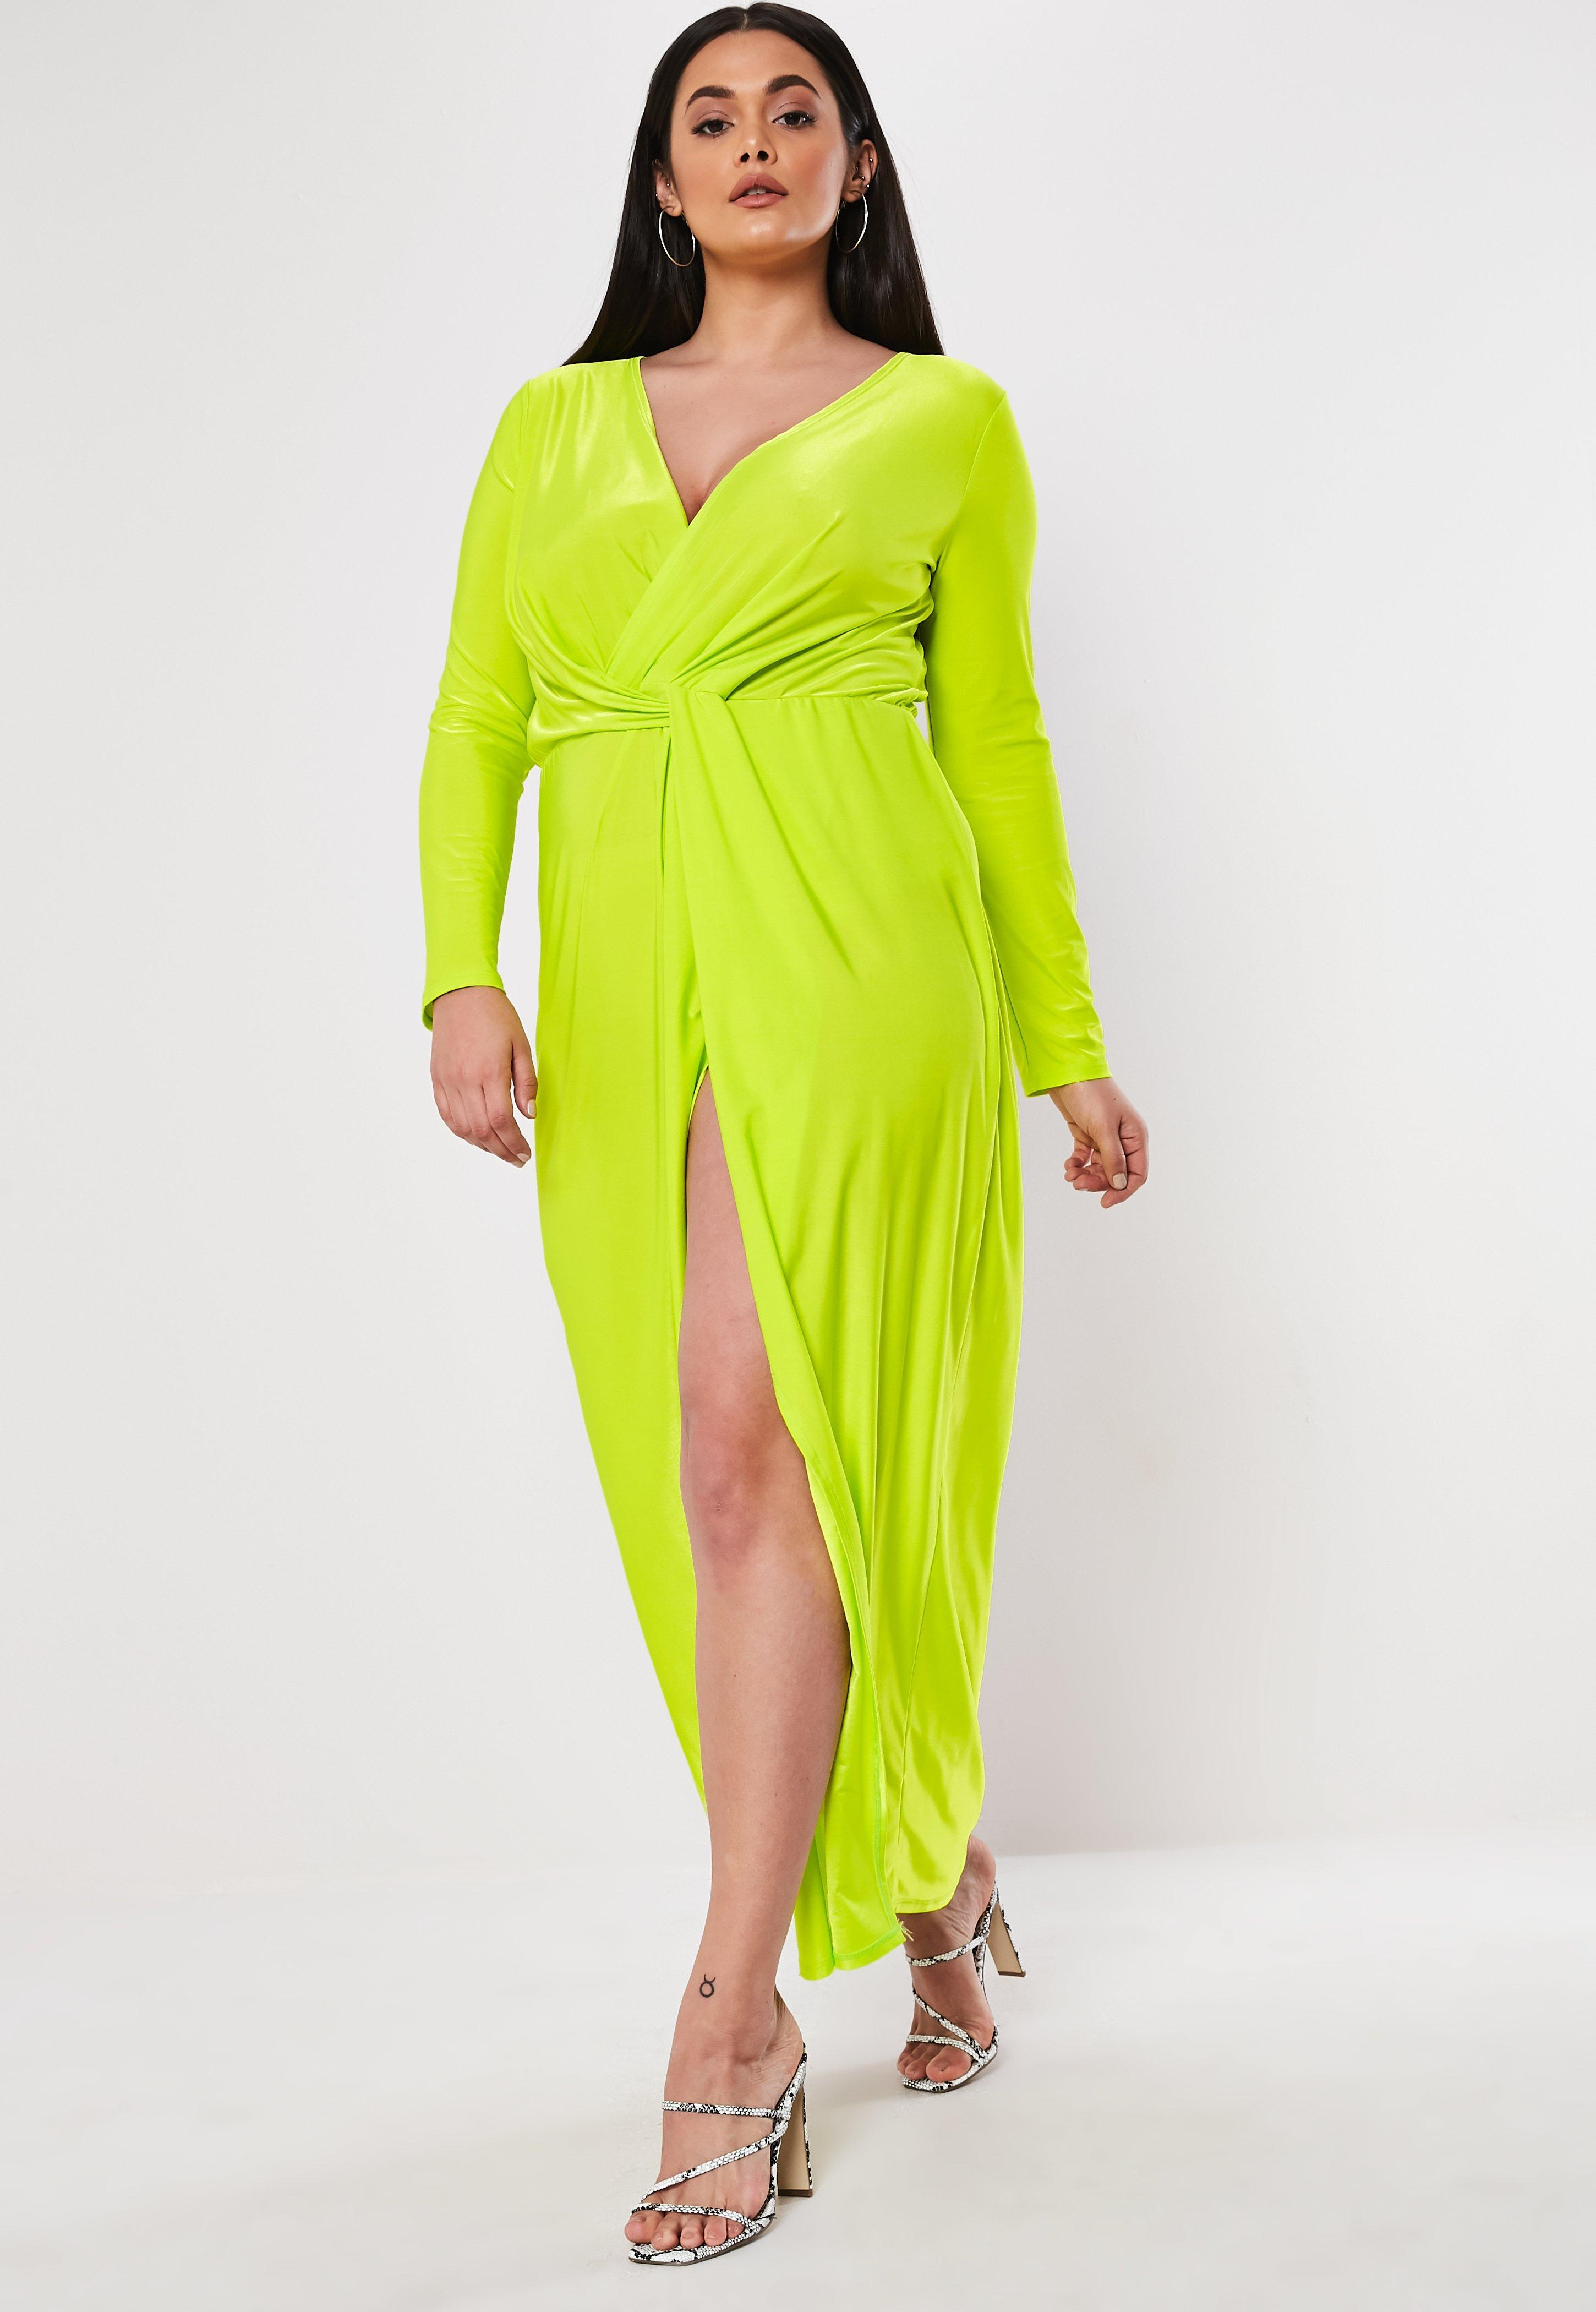 Lyst - Missguided Plus Size Lime Thigh Split Maxi Dress in Yellow